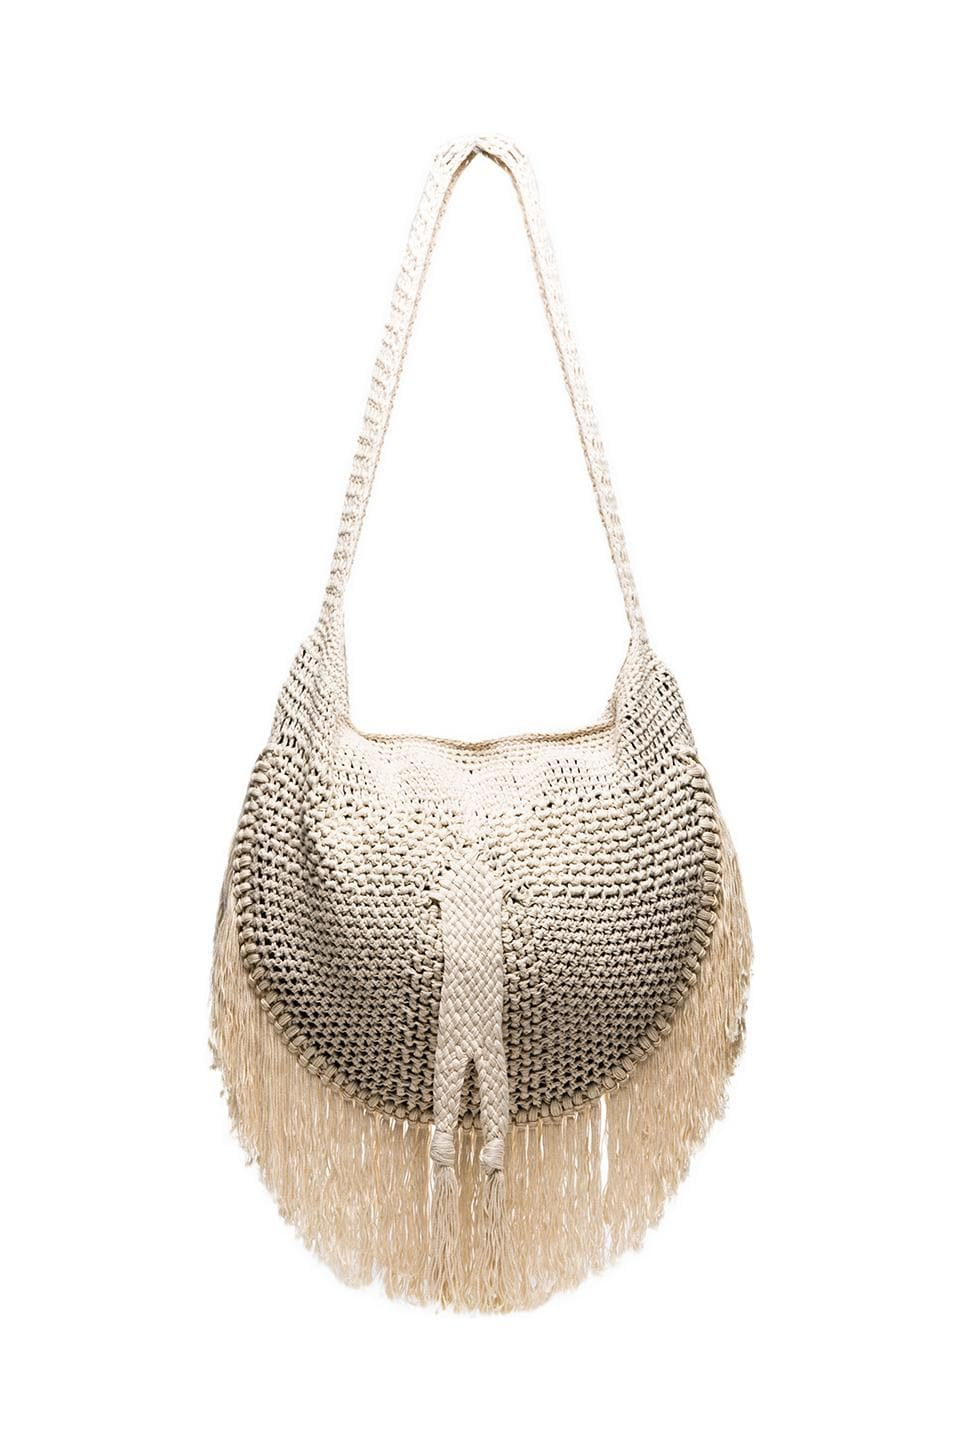 Indah Sesame Fringe Shoulder Bag in Ivory